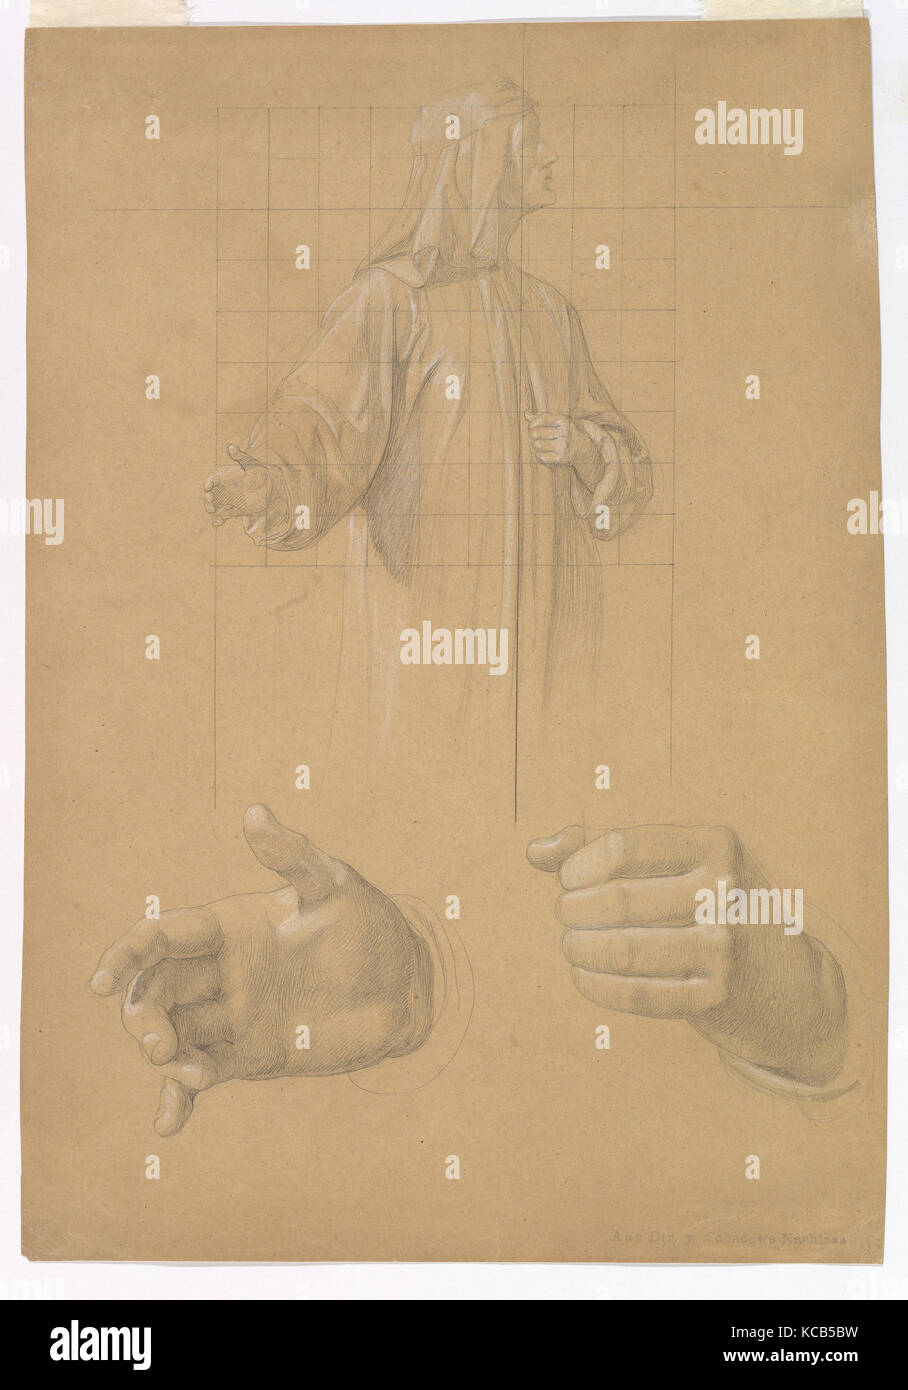 Study of a Standing Man with Headcloth and Two Studies of his Hands, Wilhelm Schadow, early to mid-19th century Stock Photo